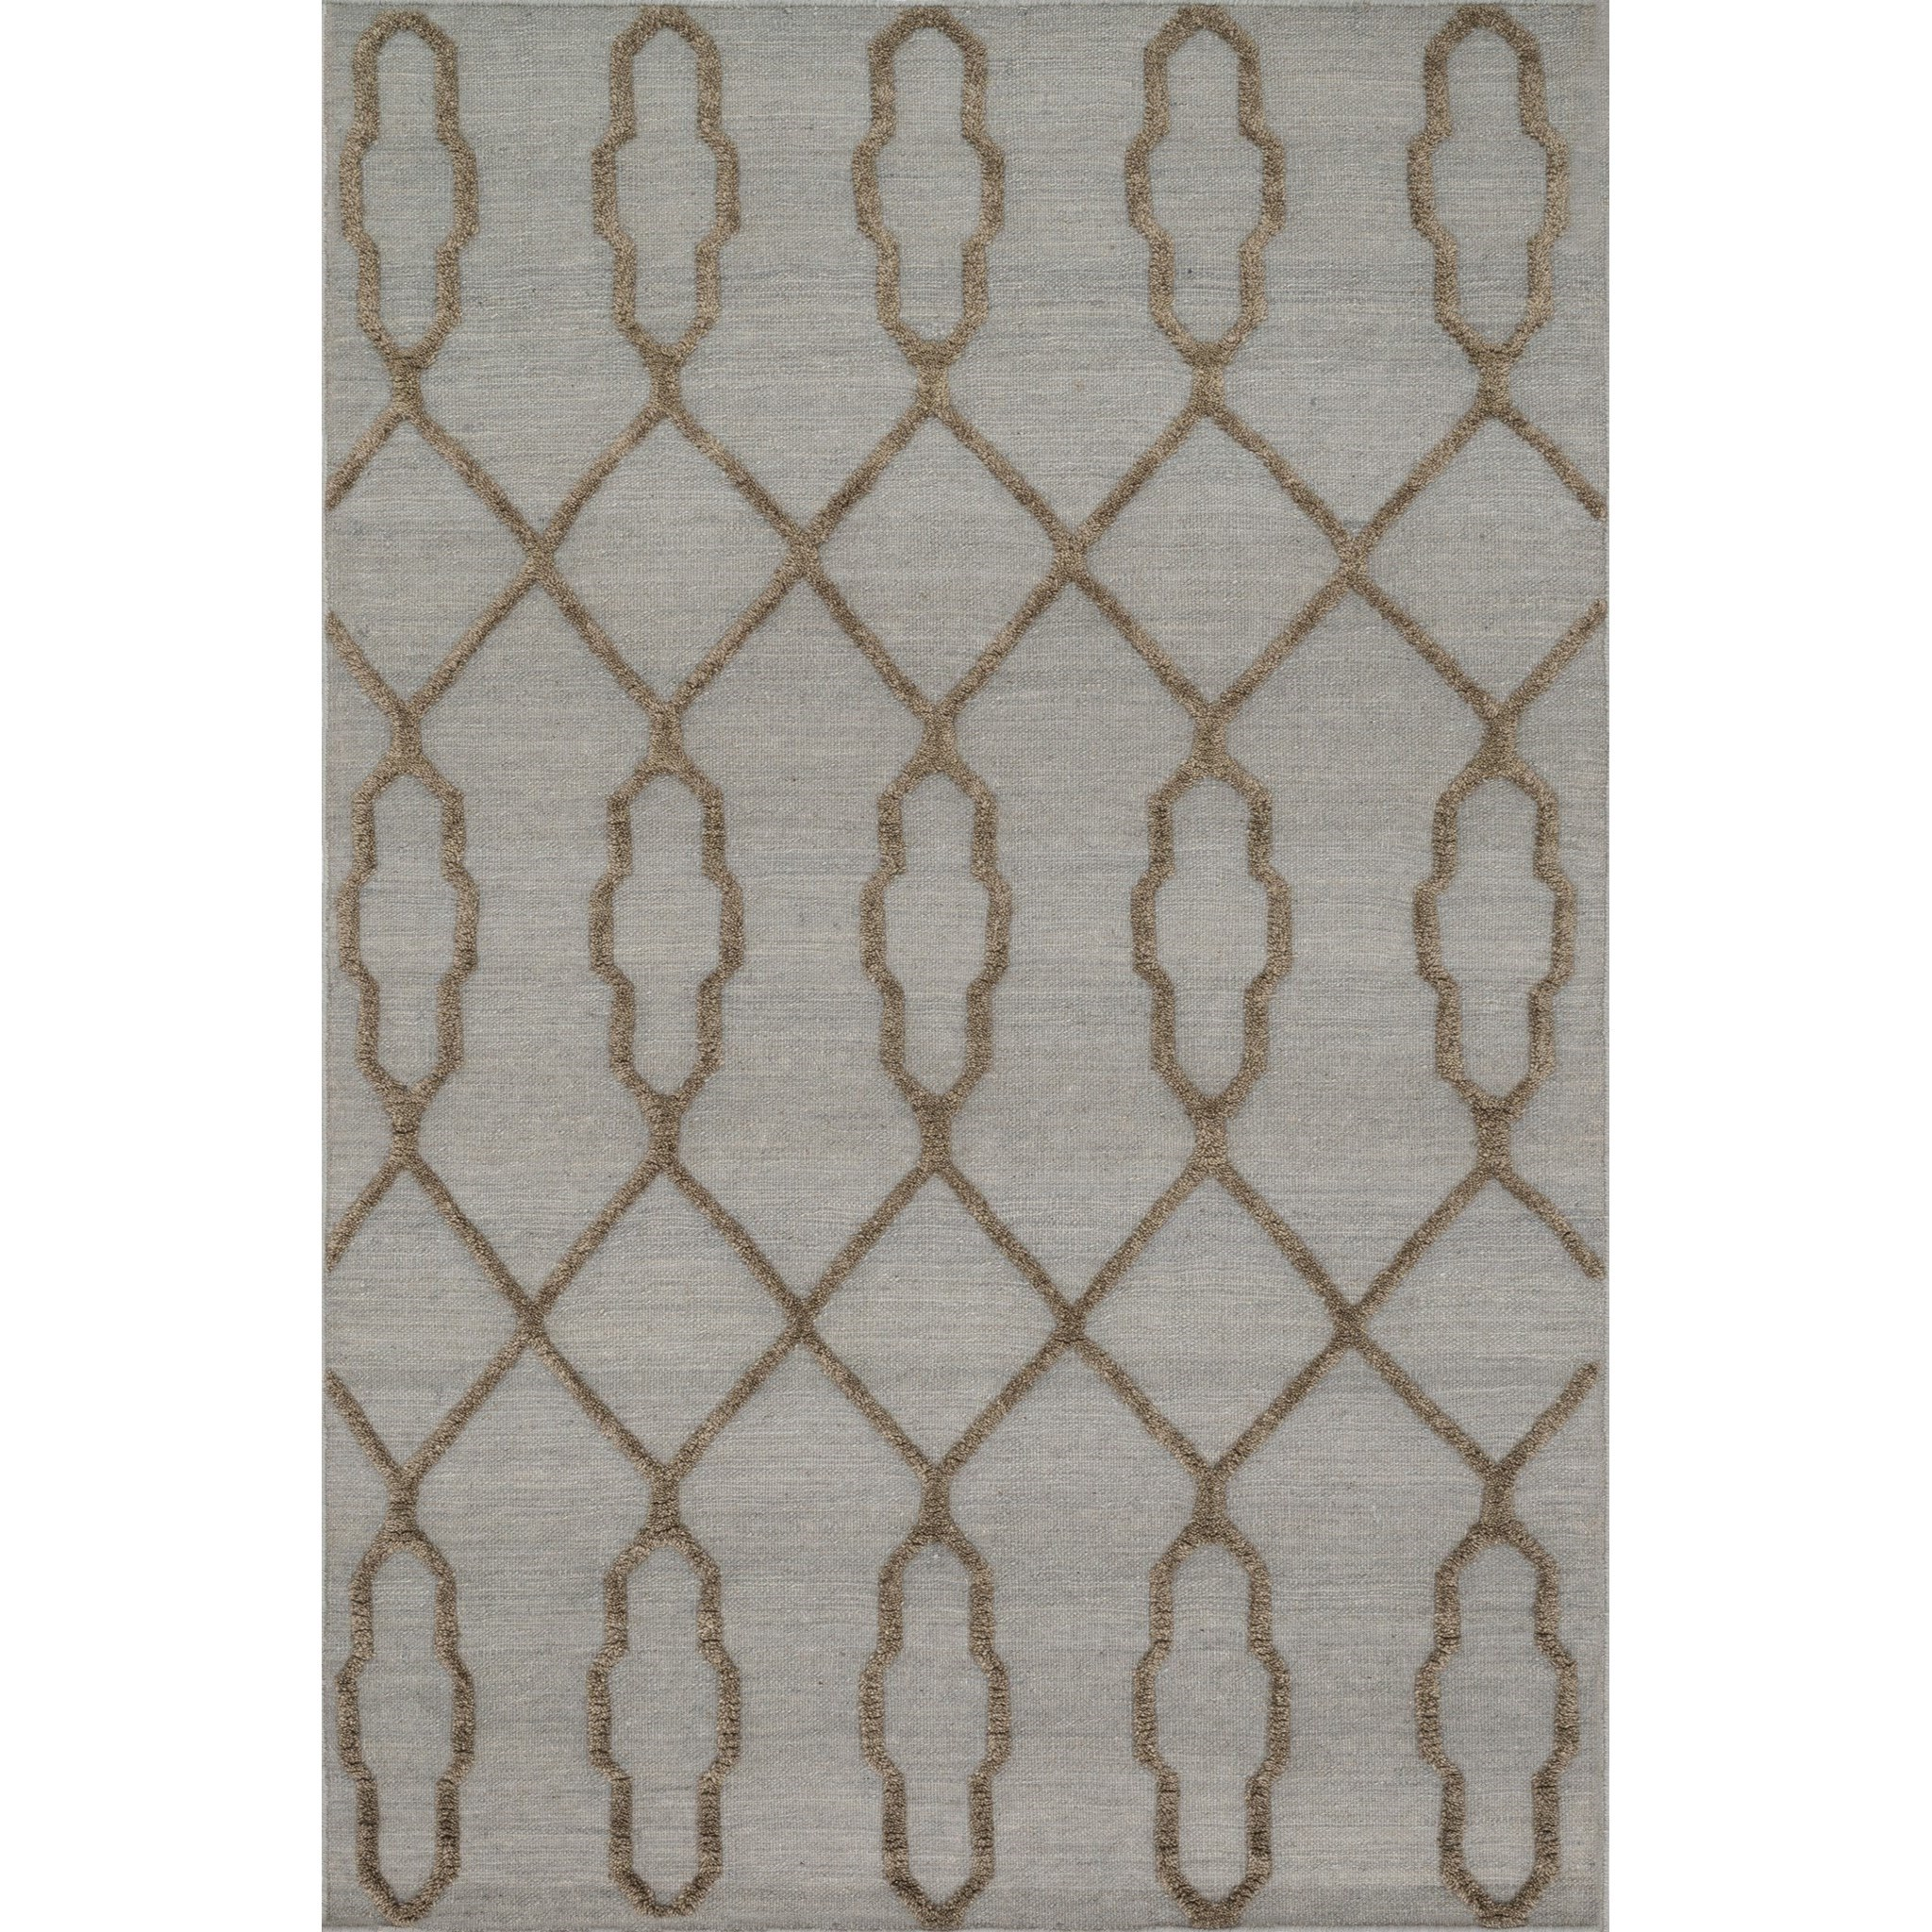 """Adler 3'-6"""" x 5'-6"""" Area Rug by Loloi Rugs at Sprintz Furniture"""